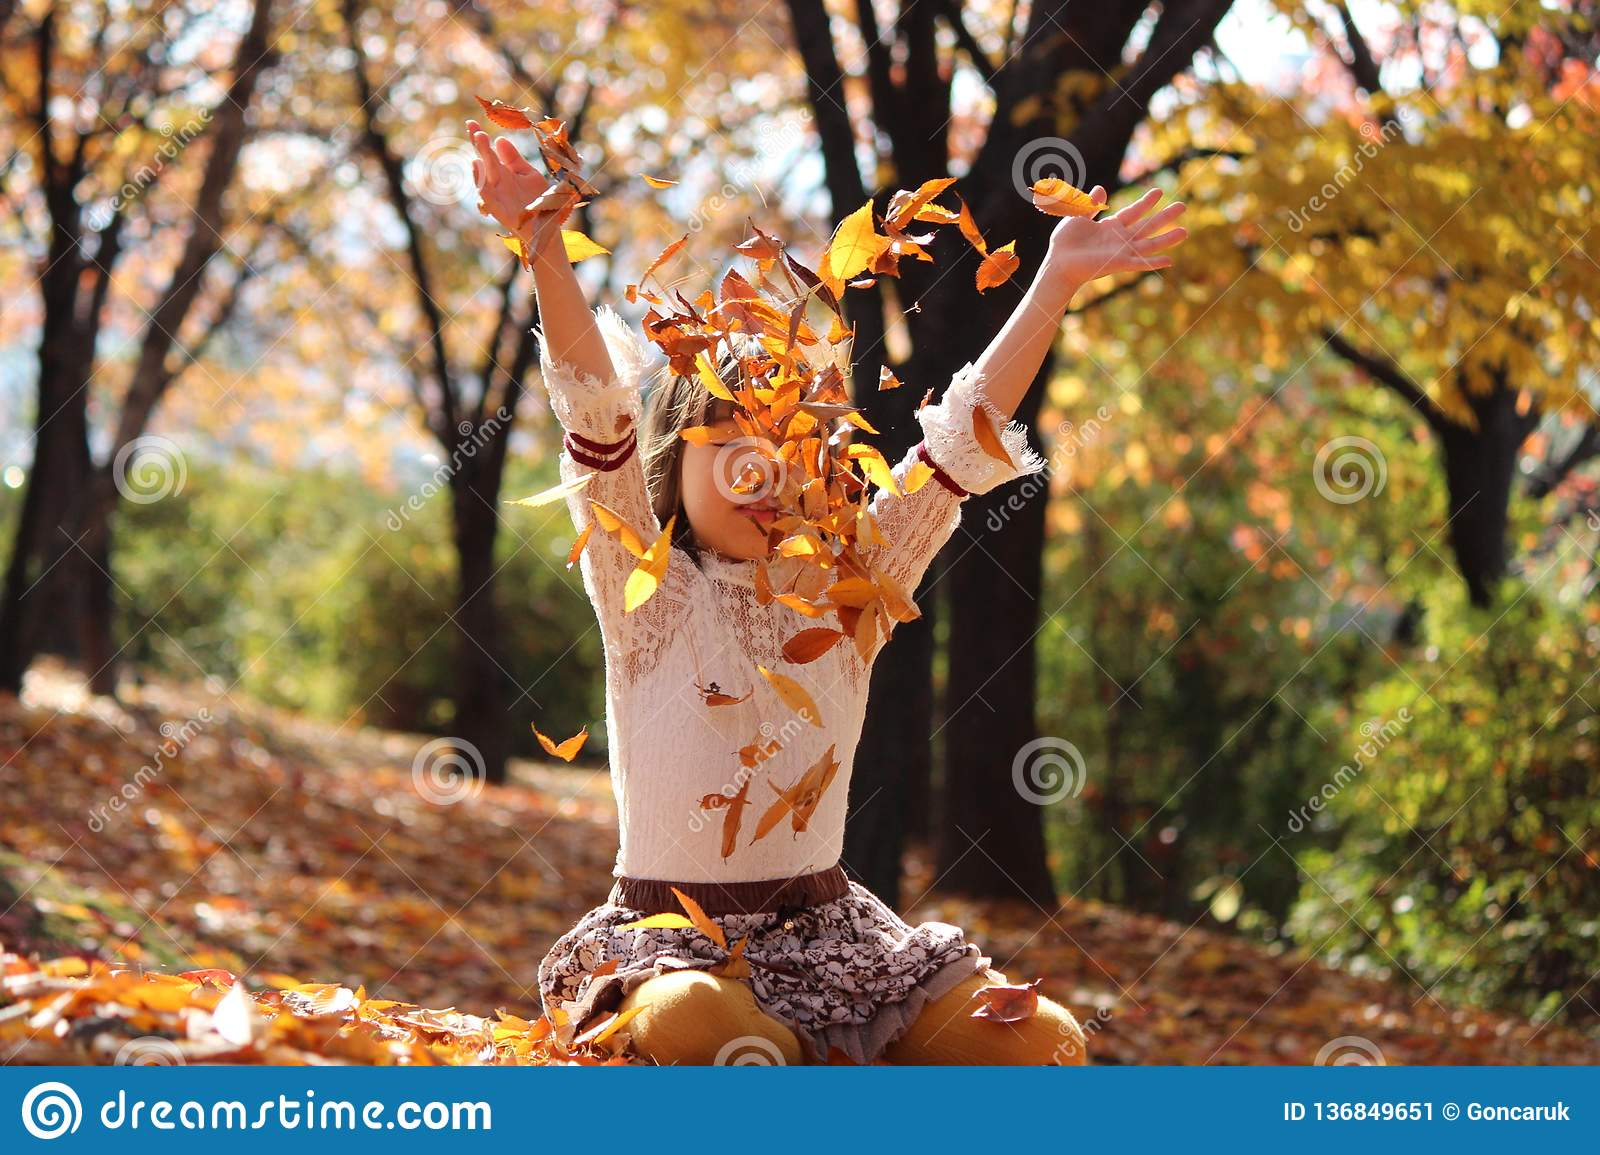 Kids Vacation Autumn In Korea Stock Image Image Of Laugh Weather 136849651